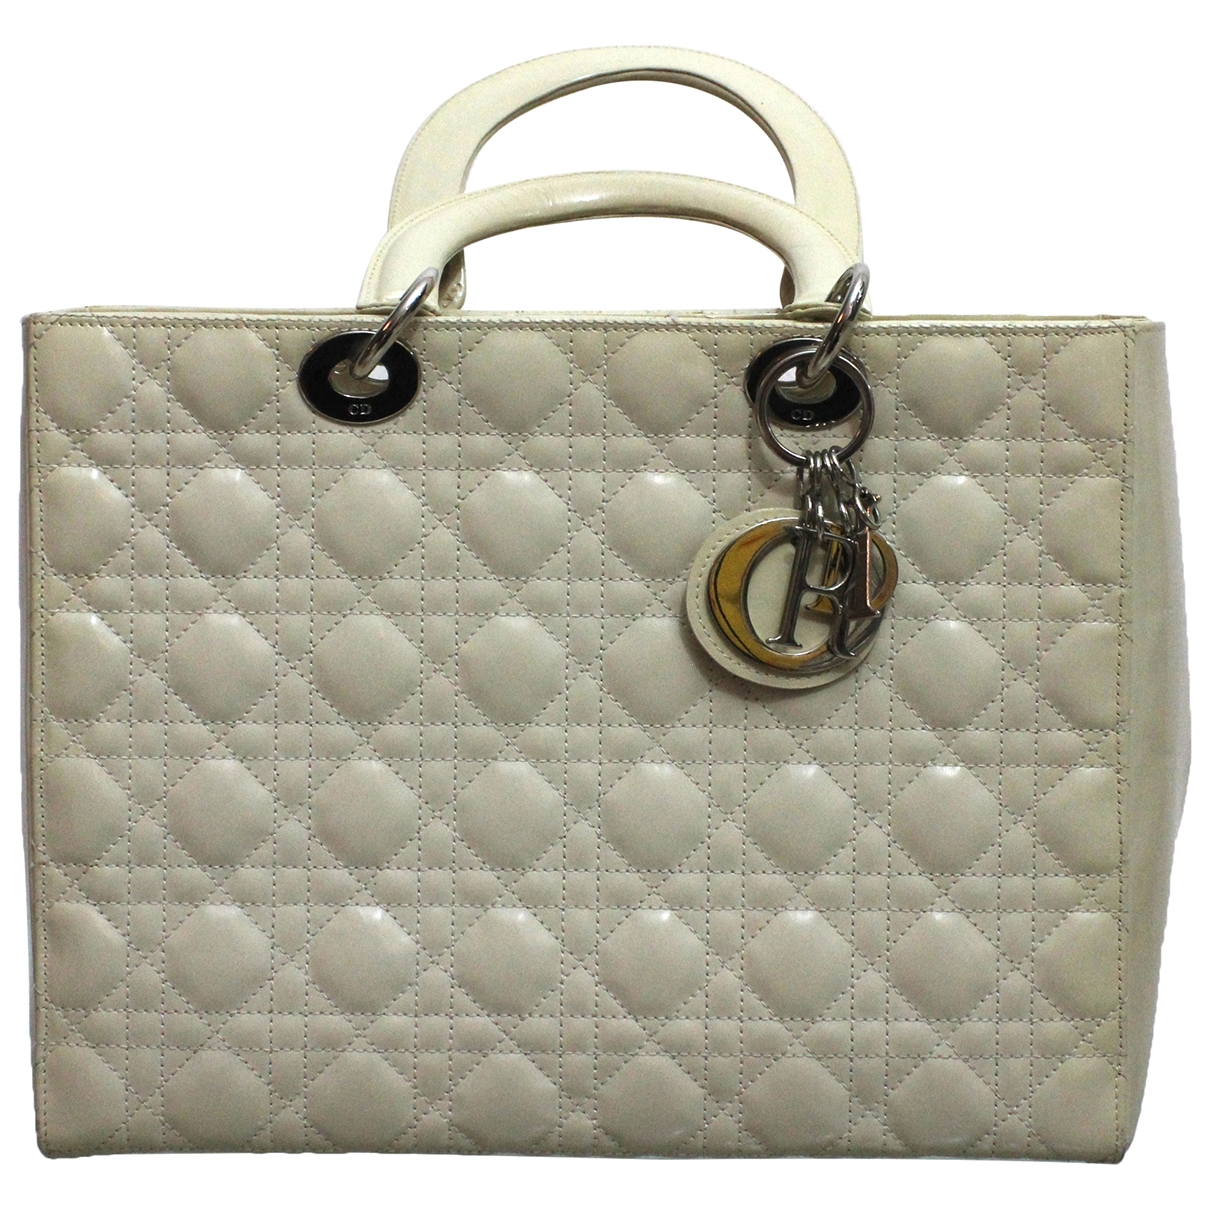 Dior Lady Dior Beige Leather handbag for Women \N